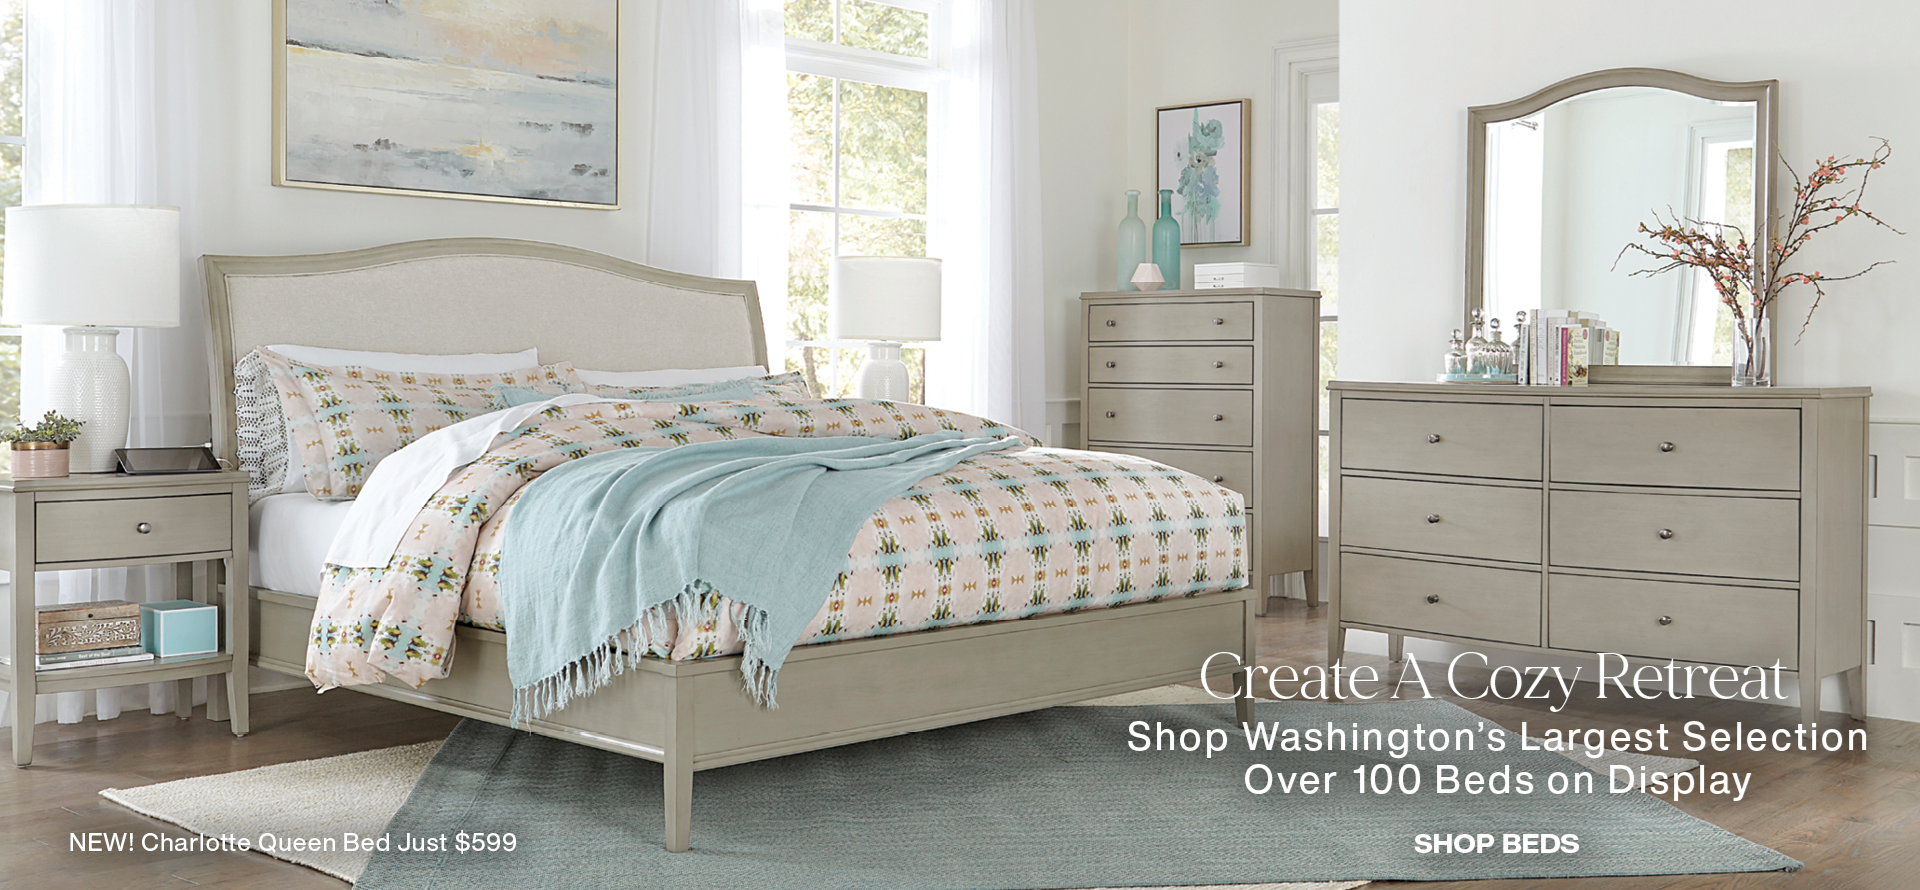 Create a Cozy Retreat, Introducing the Charlotte Queen Bed Just $599